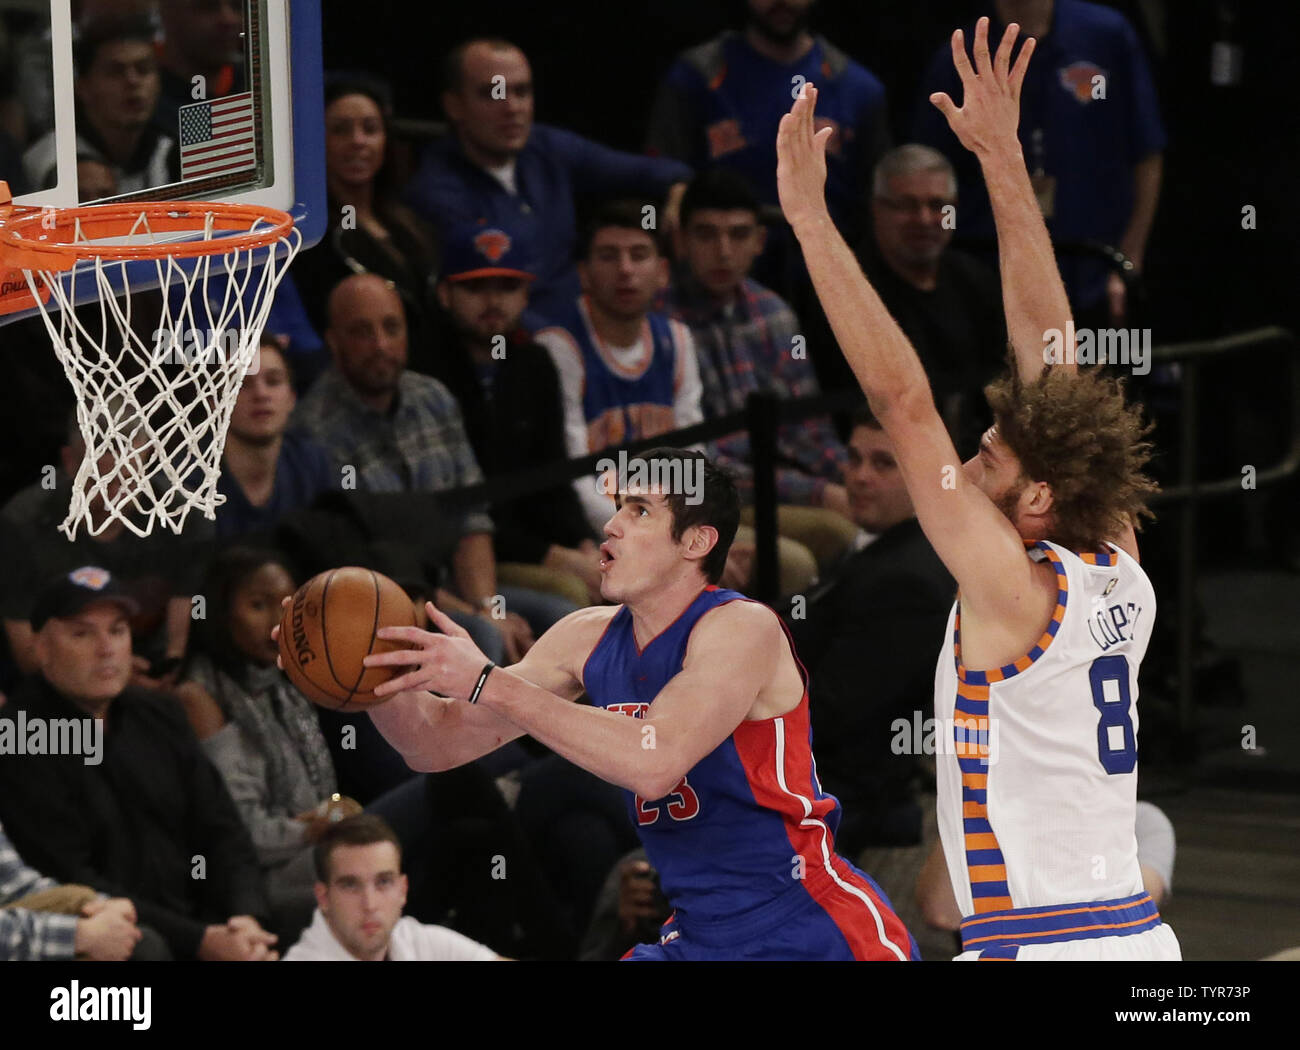 New York Knicks Robin Lopez defends Detroit Pistons Ersan Ilyasova who drives to the basket in the first quarter at Madison Square Garden in New York City on December 29, 2015.   Photo by John Angelillo/UPI Stock Photo